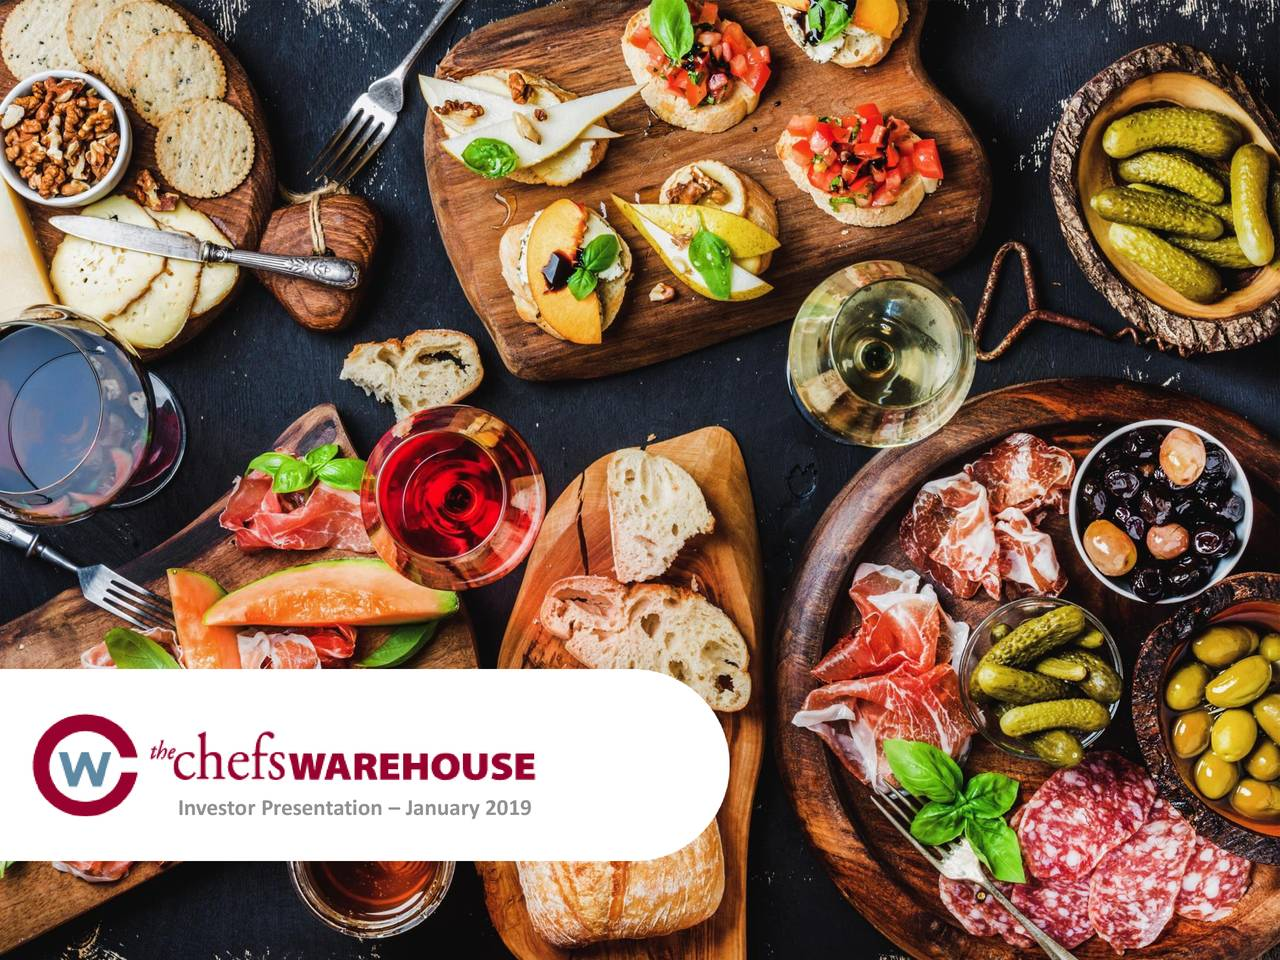 Chefs' Warehouse (CHEF) Presents At 2019 ICR Conference